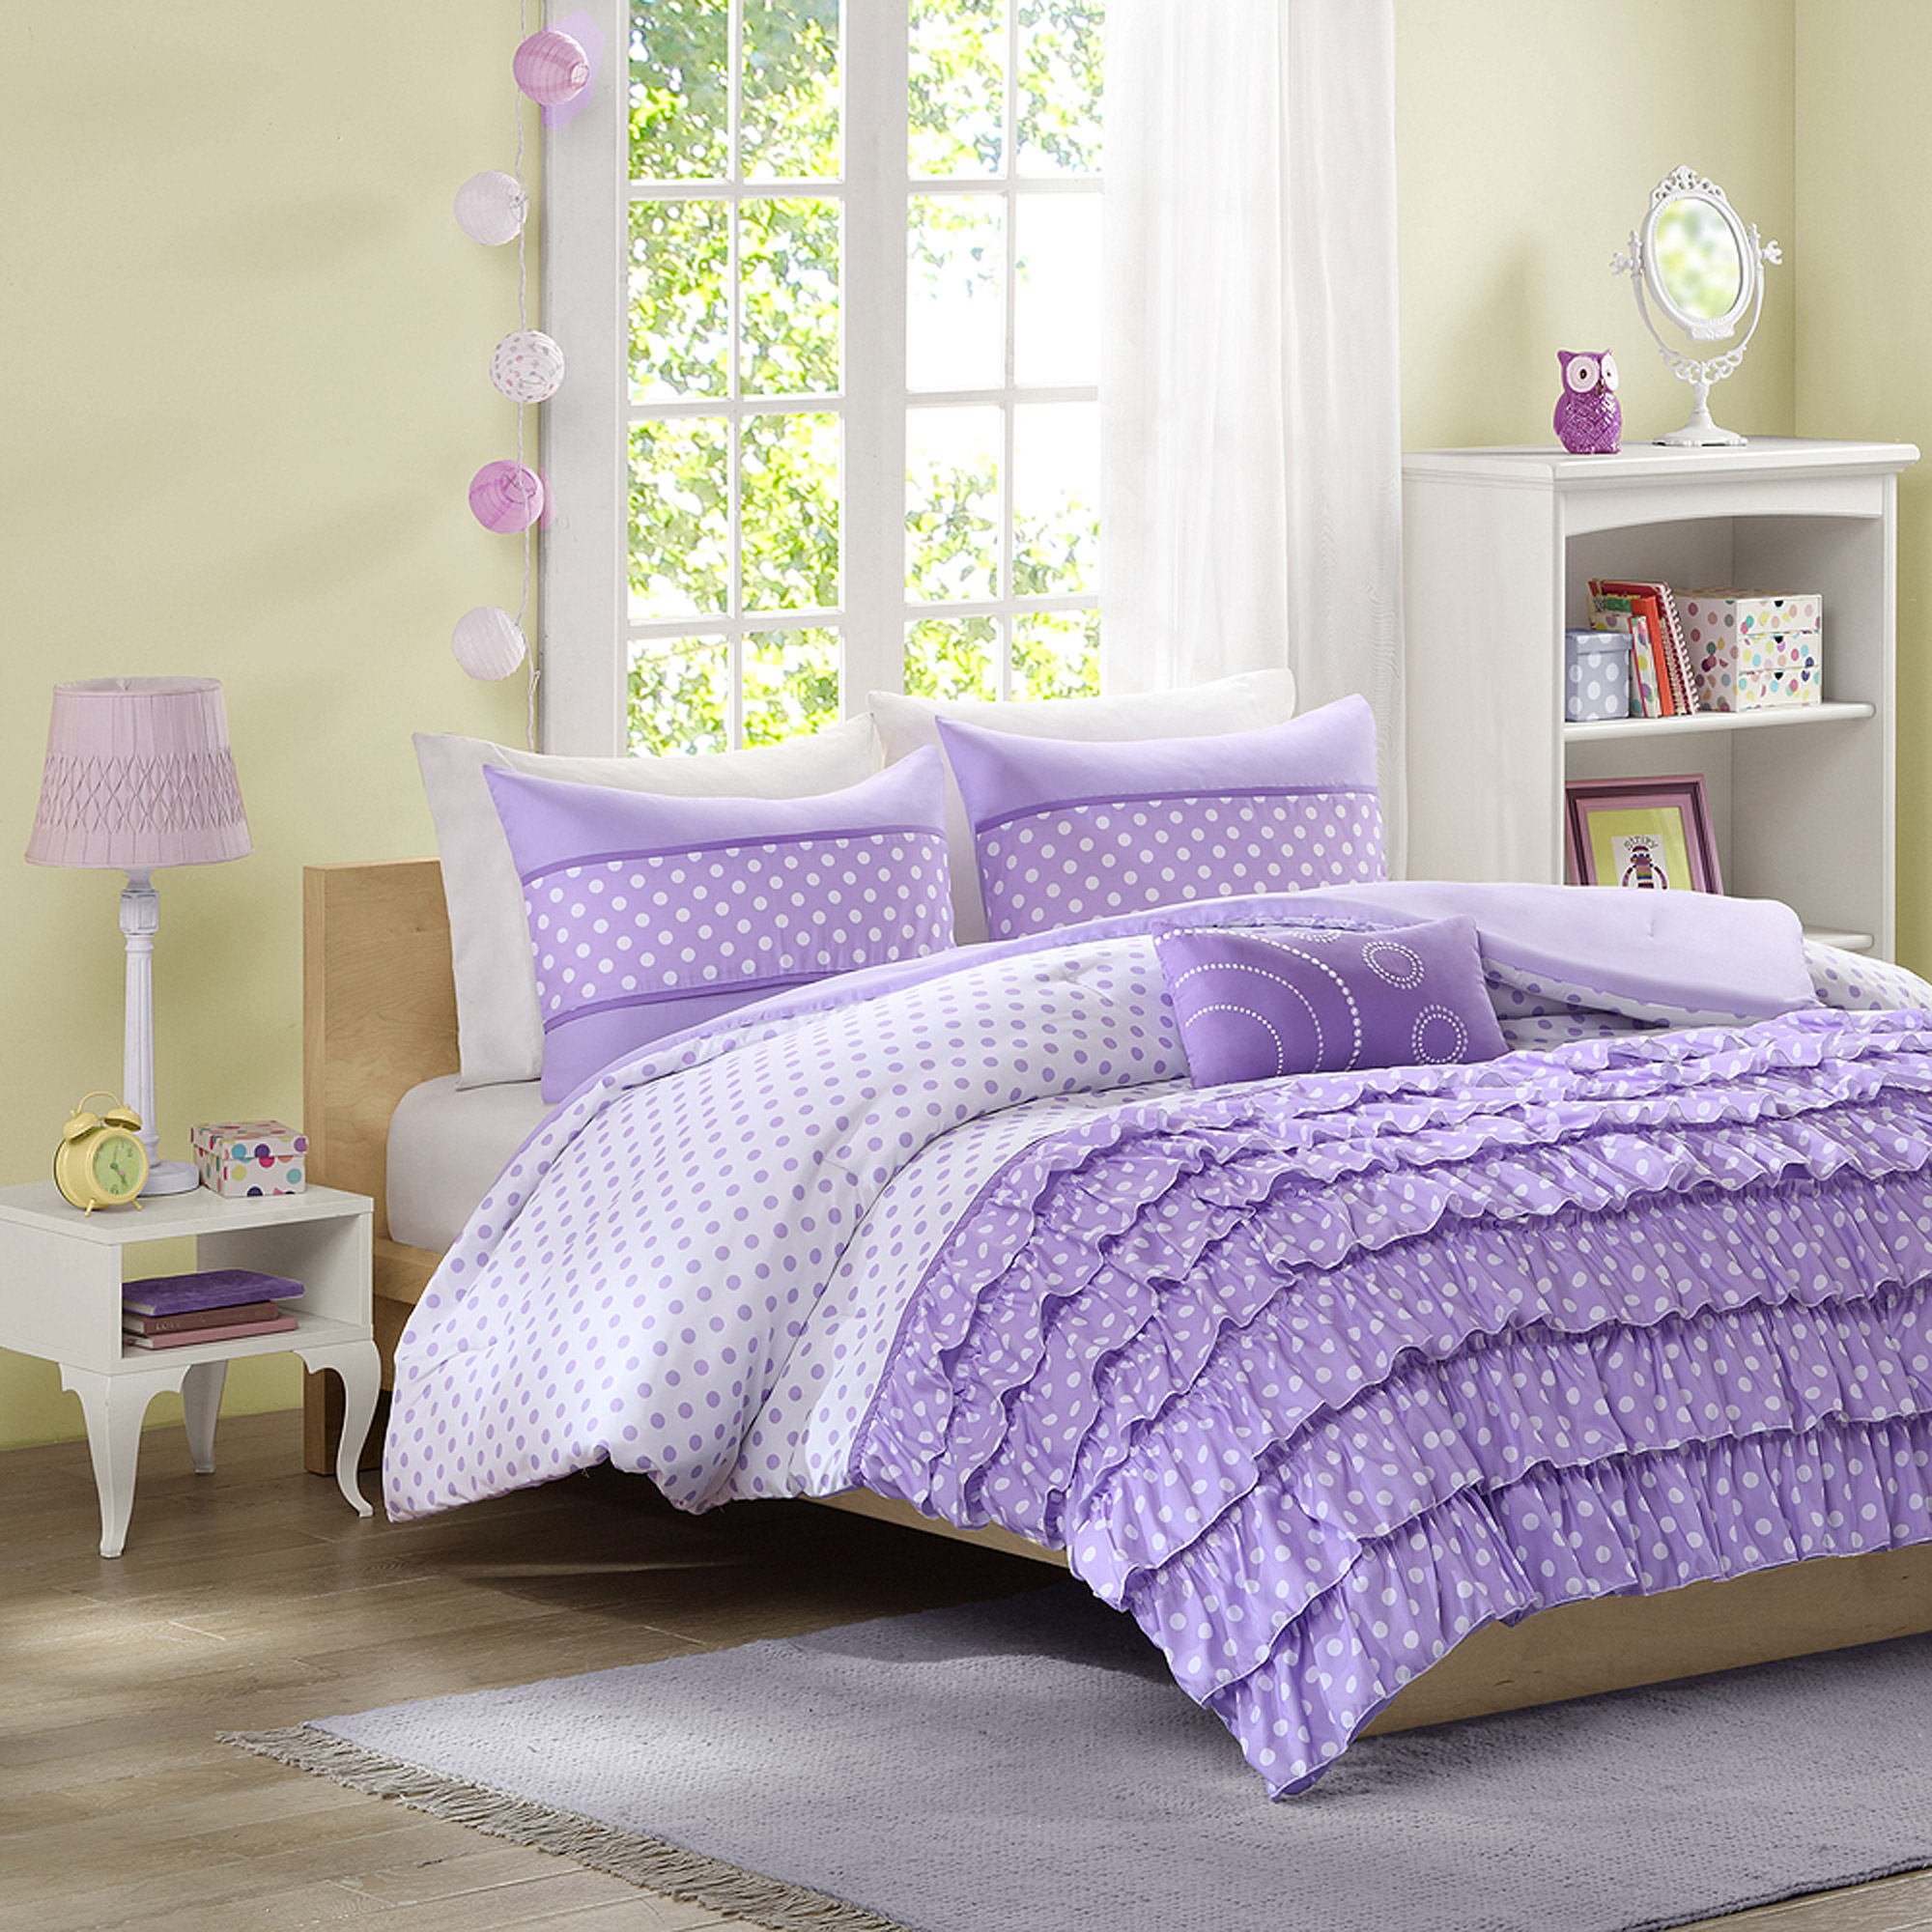 Home Essence Apartment Lindsey Bedding Comforter Set